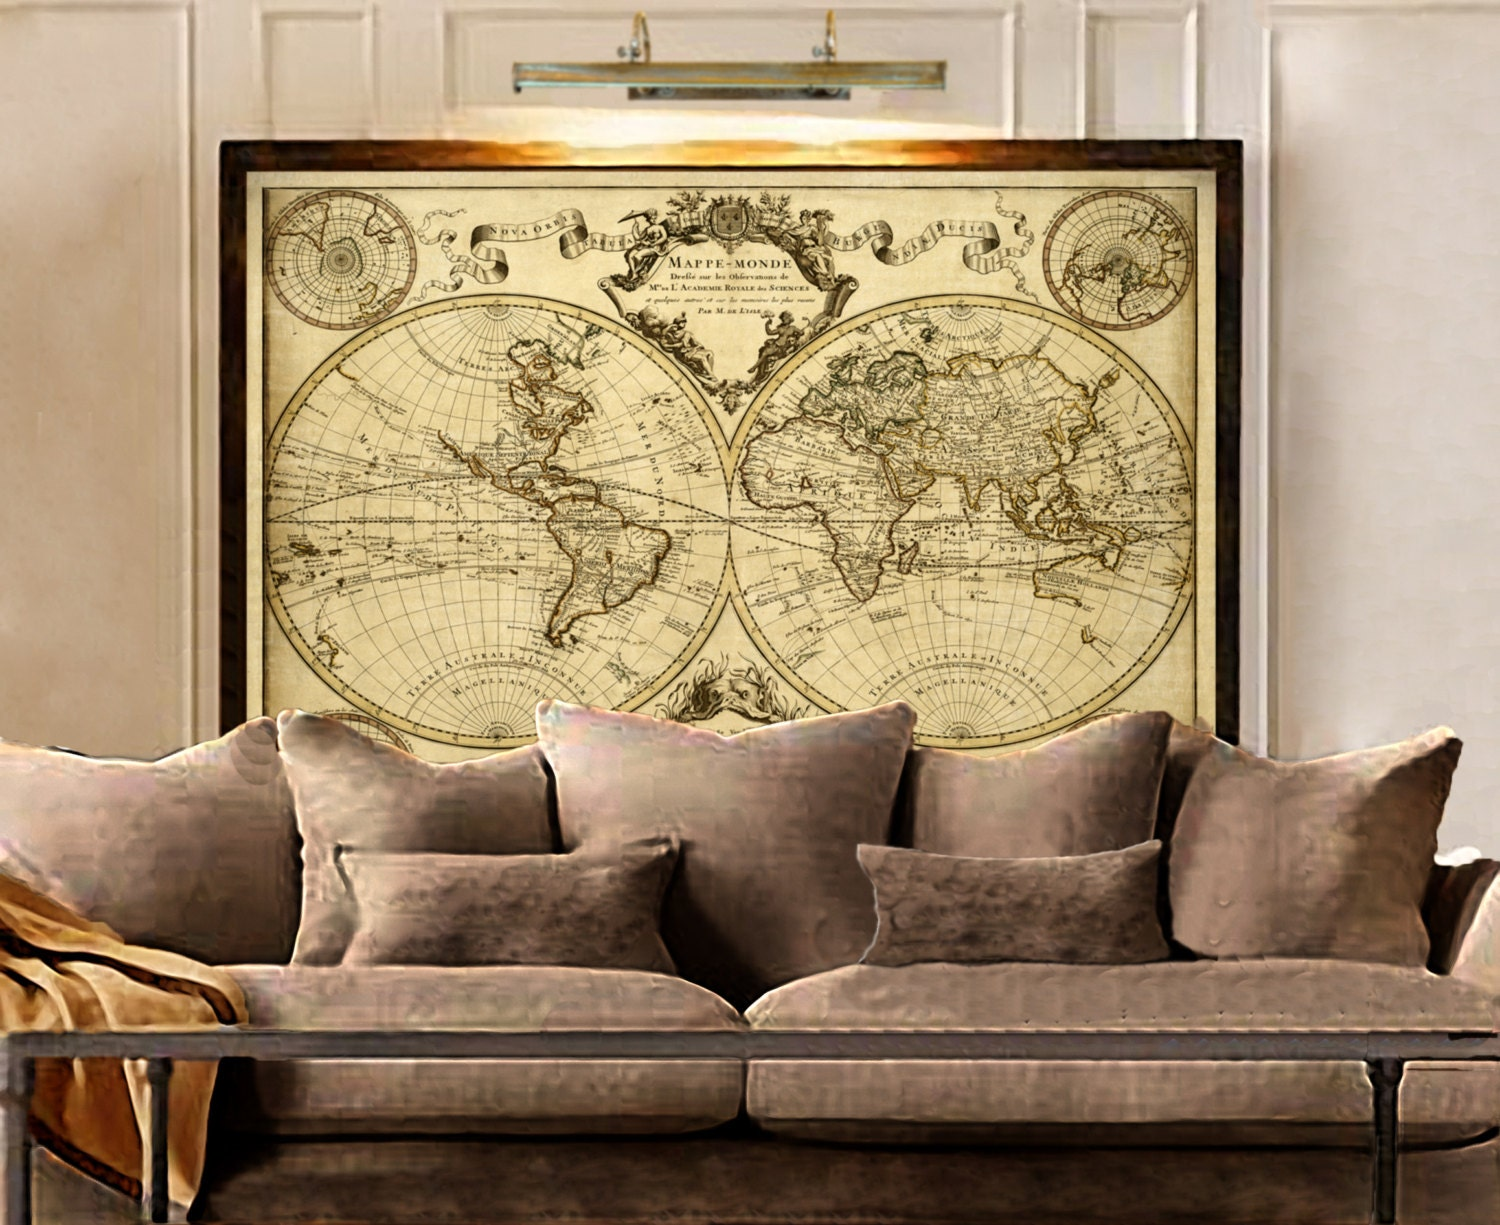 1720 old world map map art historic map antique style for Vintage home decor